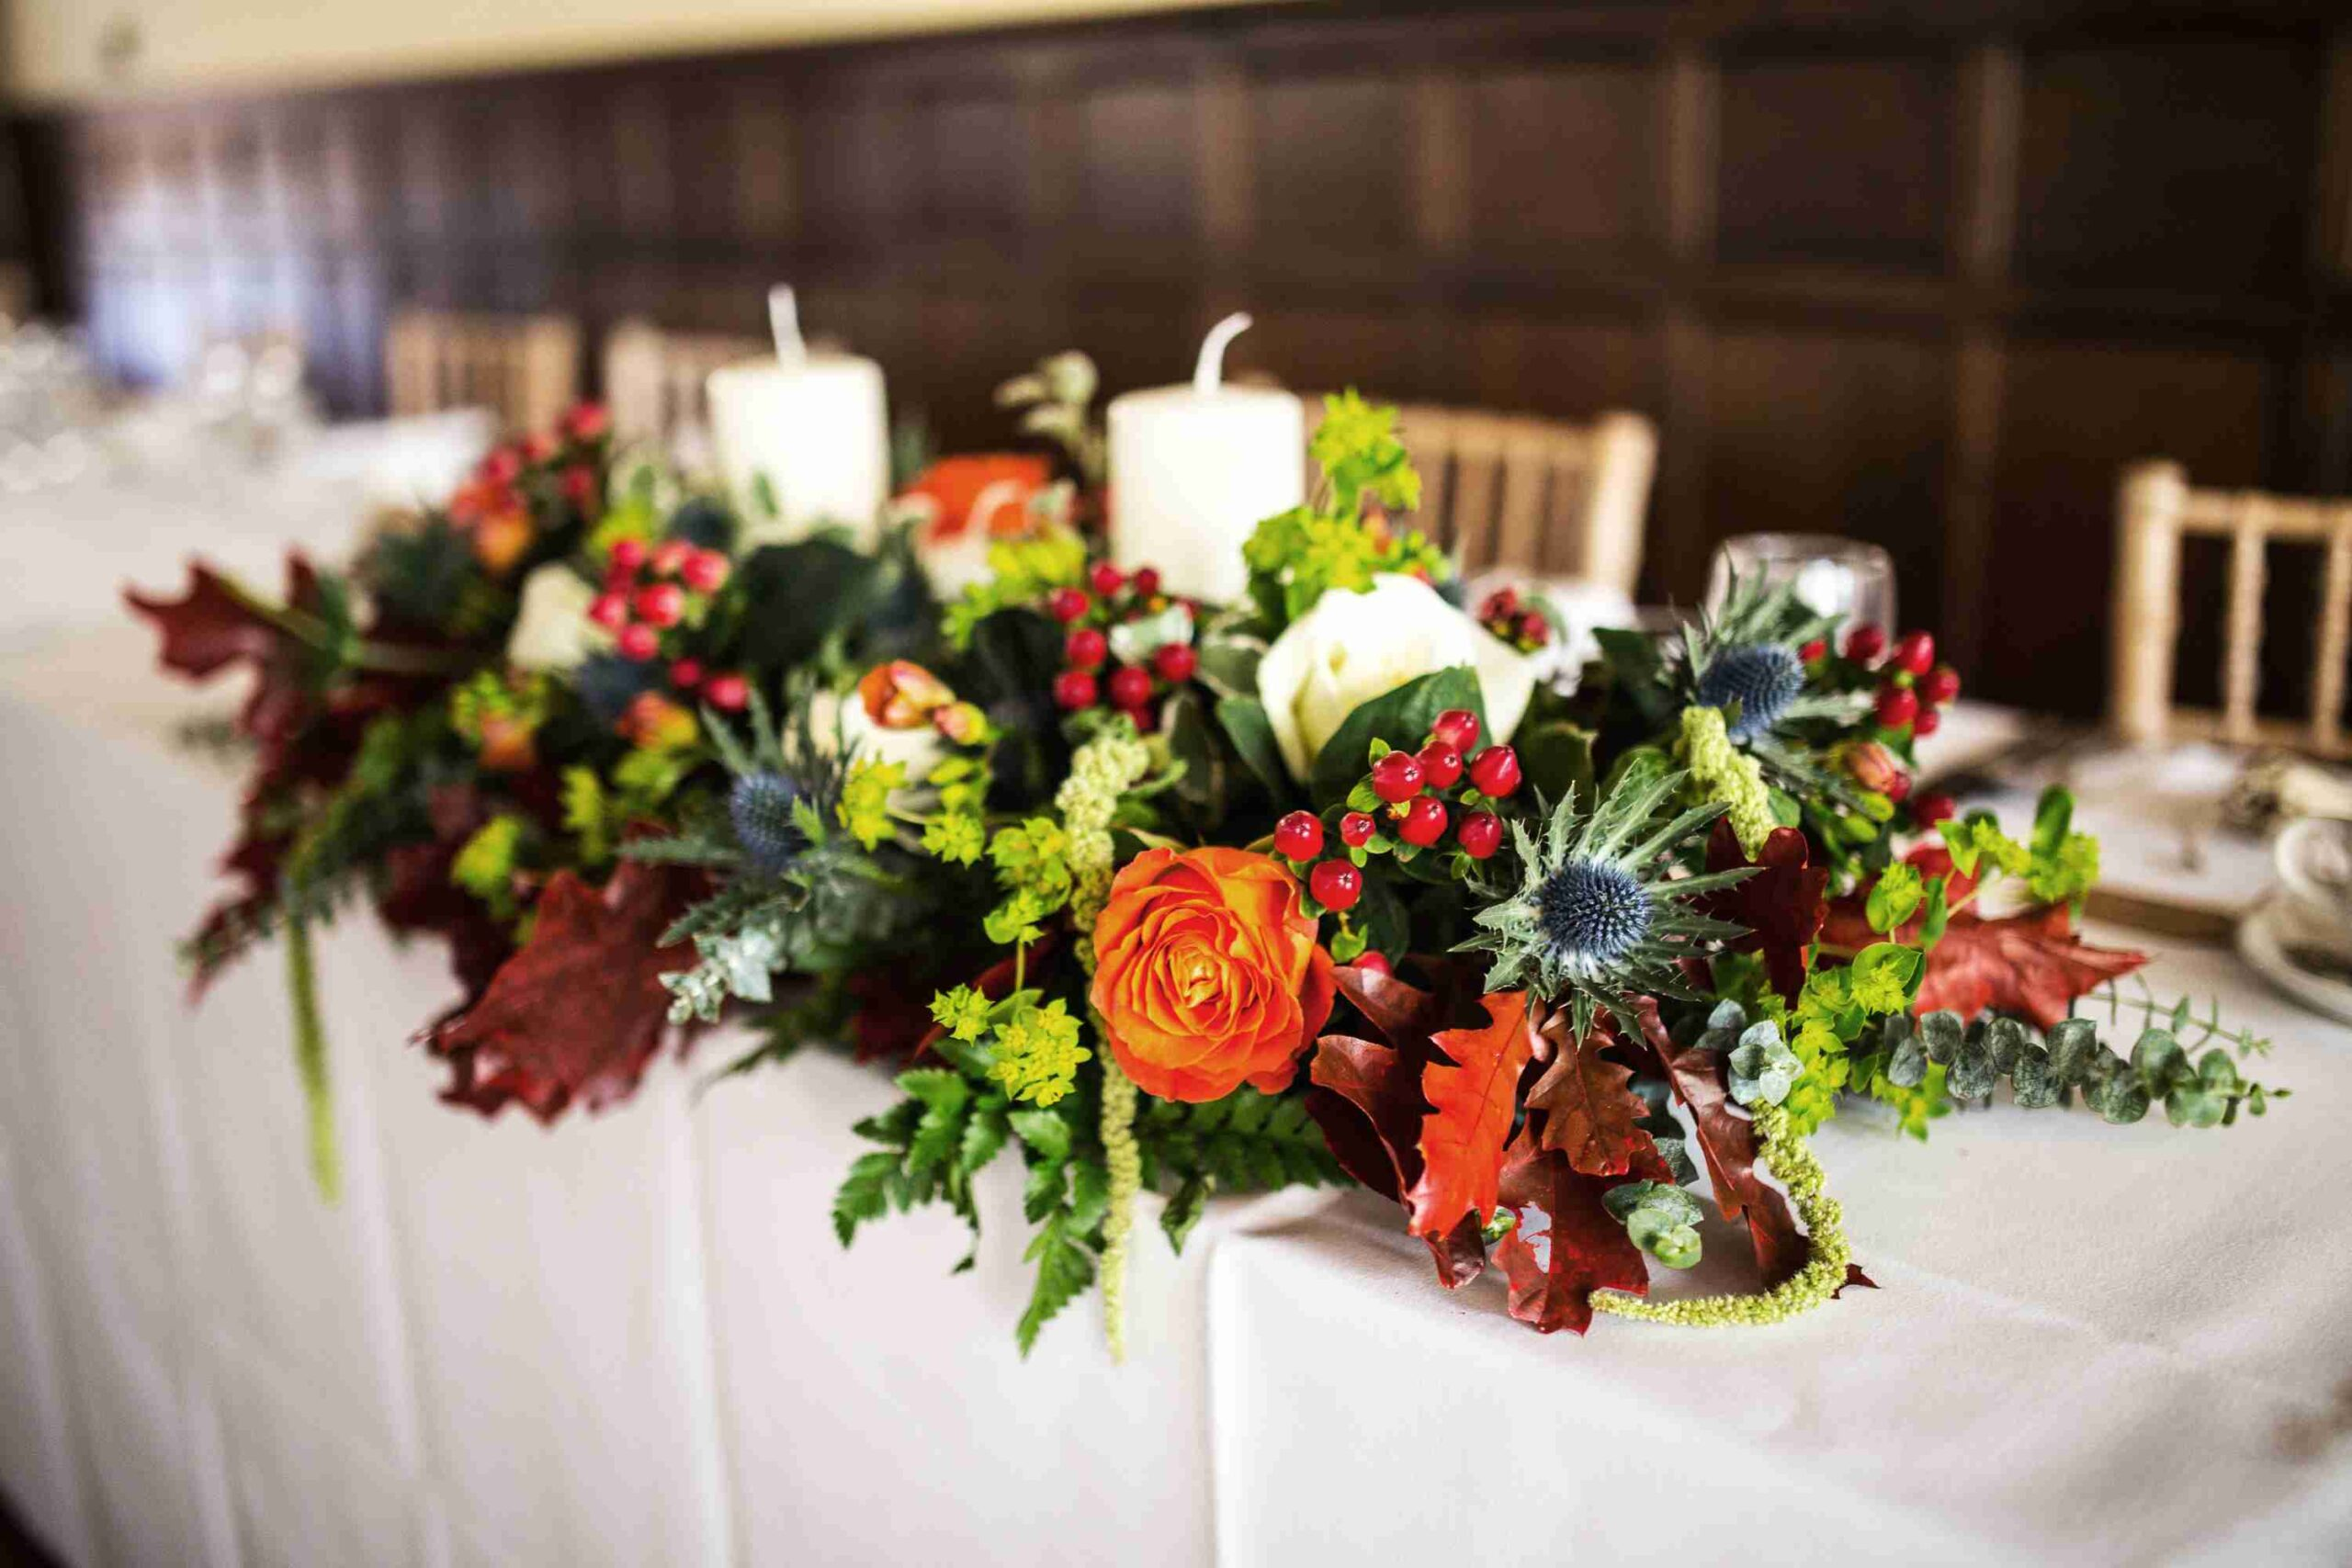 Top table floral arrangement